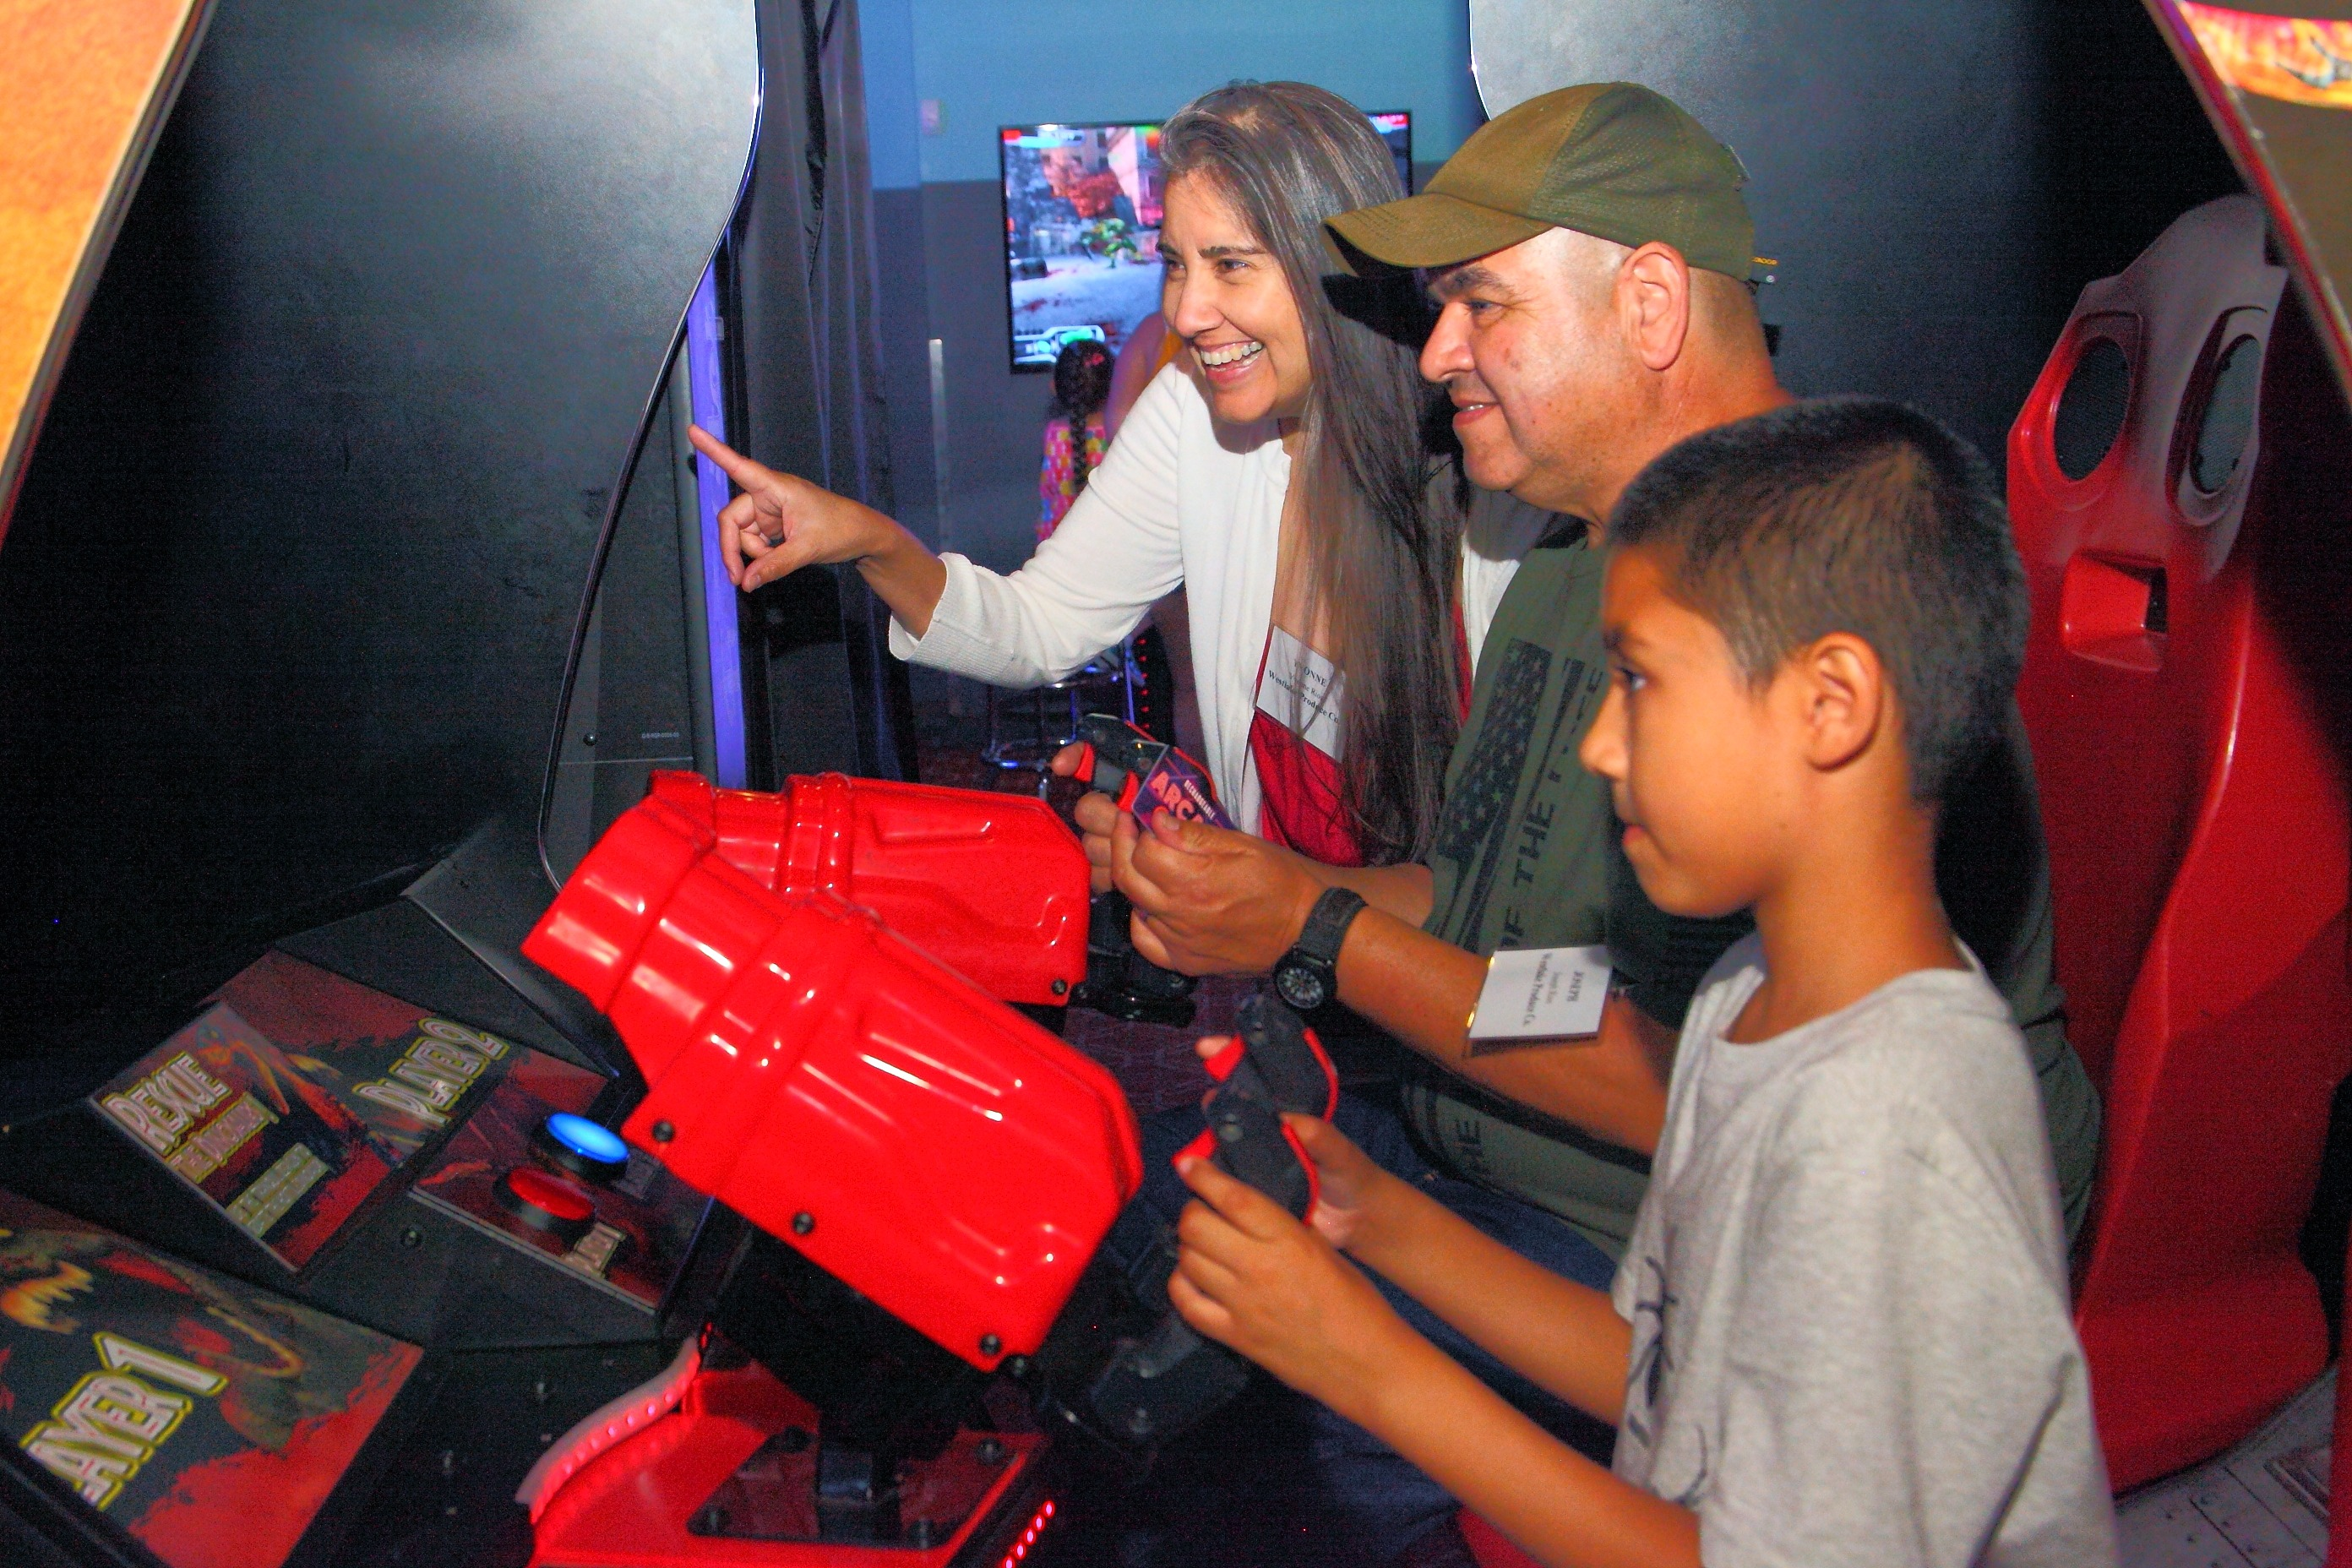 Yvonne and Joseph Rios from Westlake Produce Company, having fun in the arcade with their son!